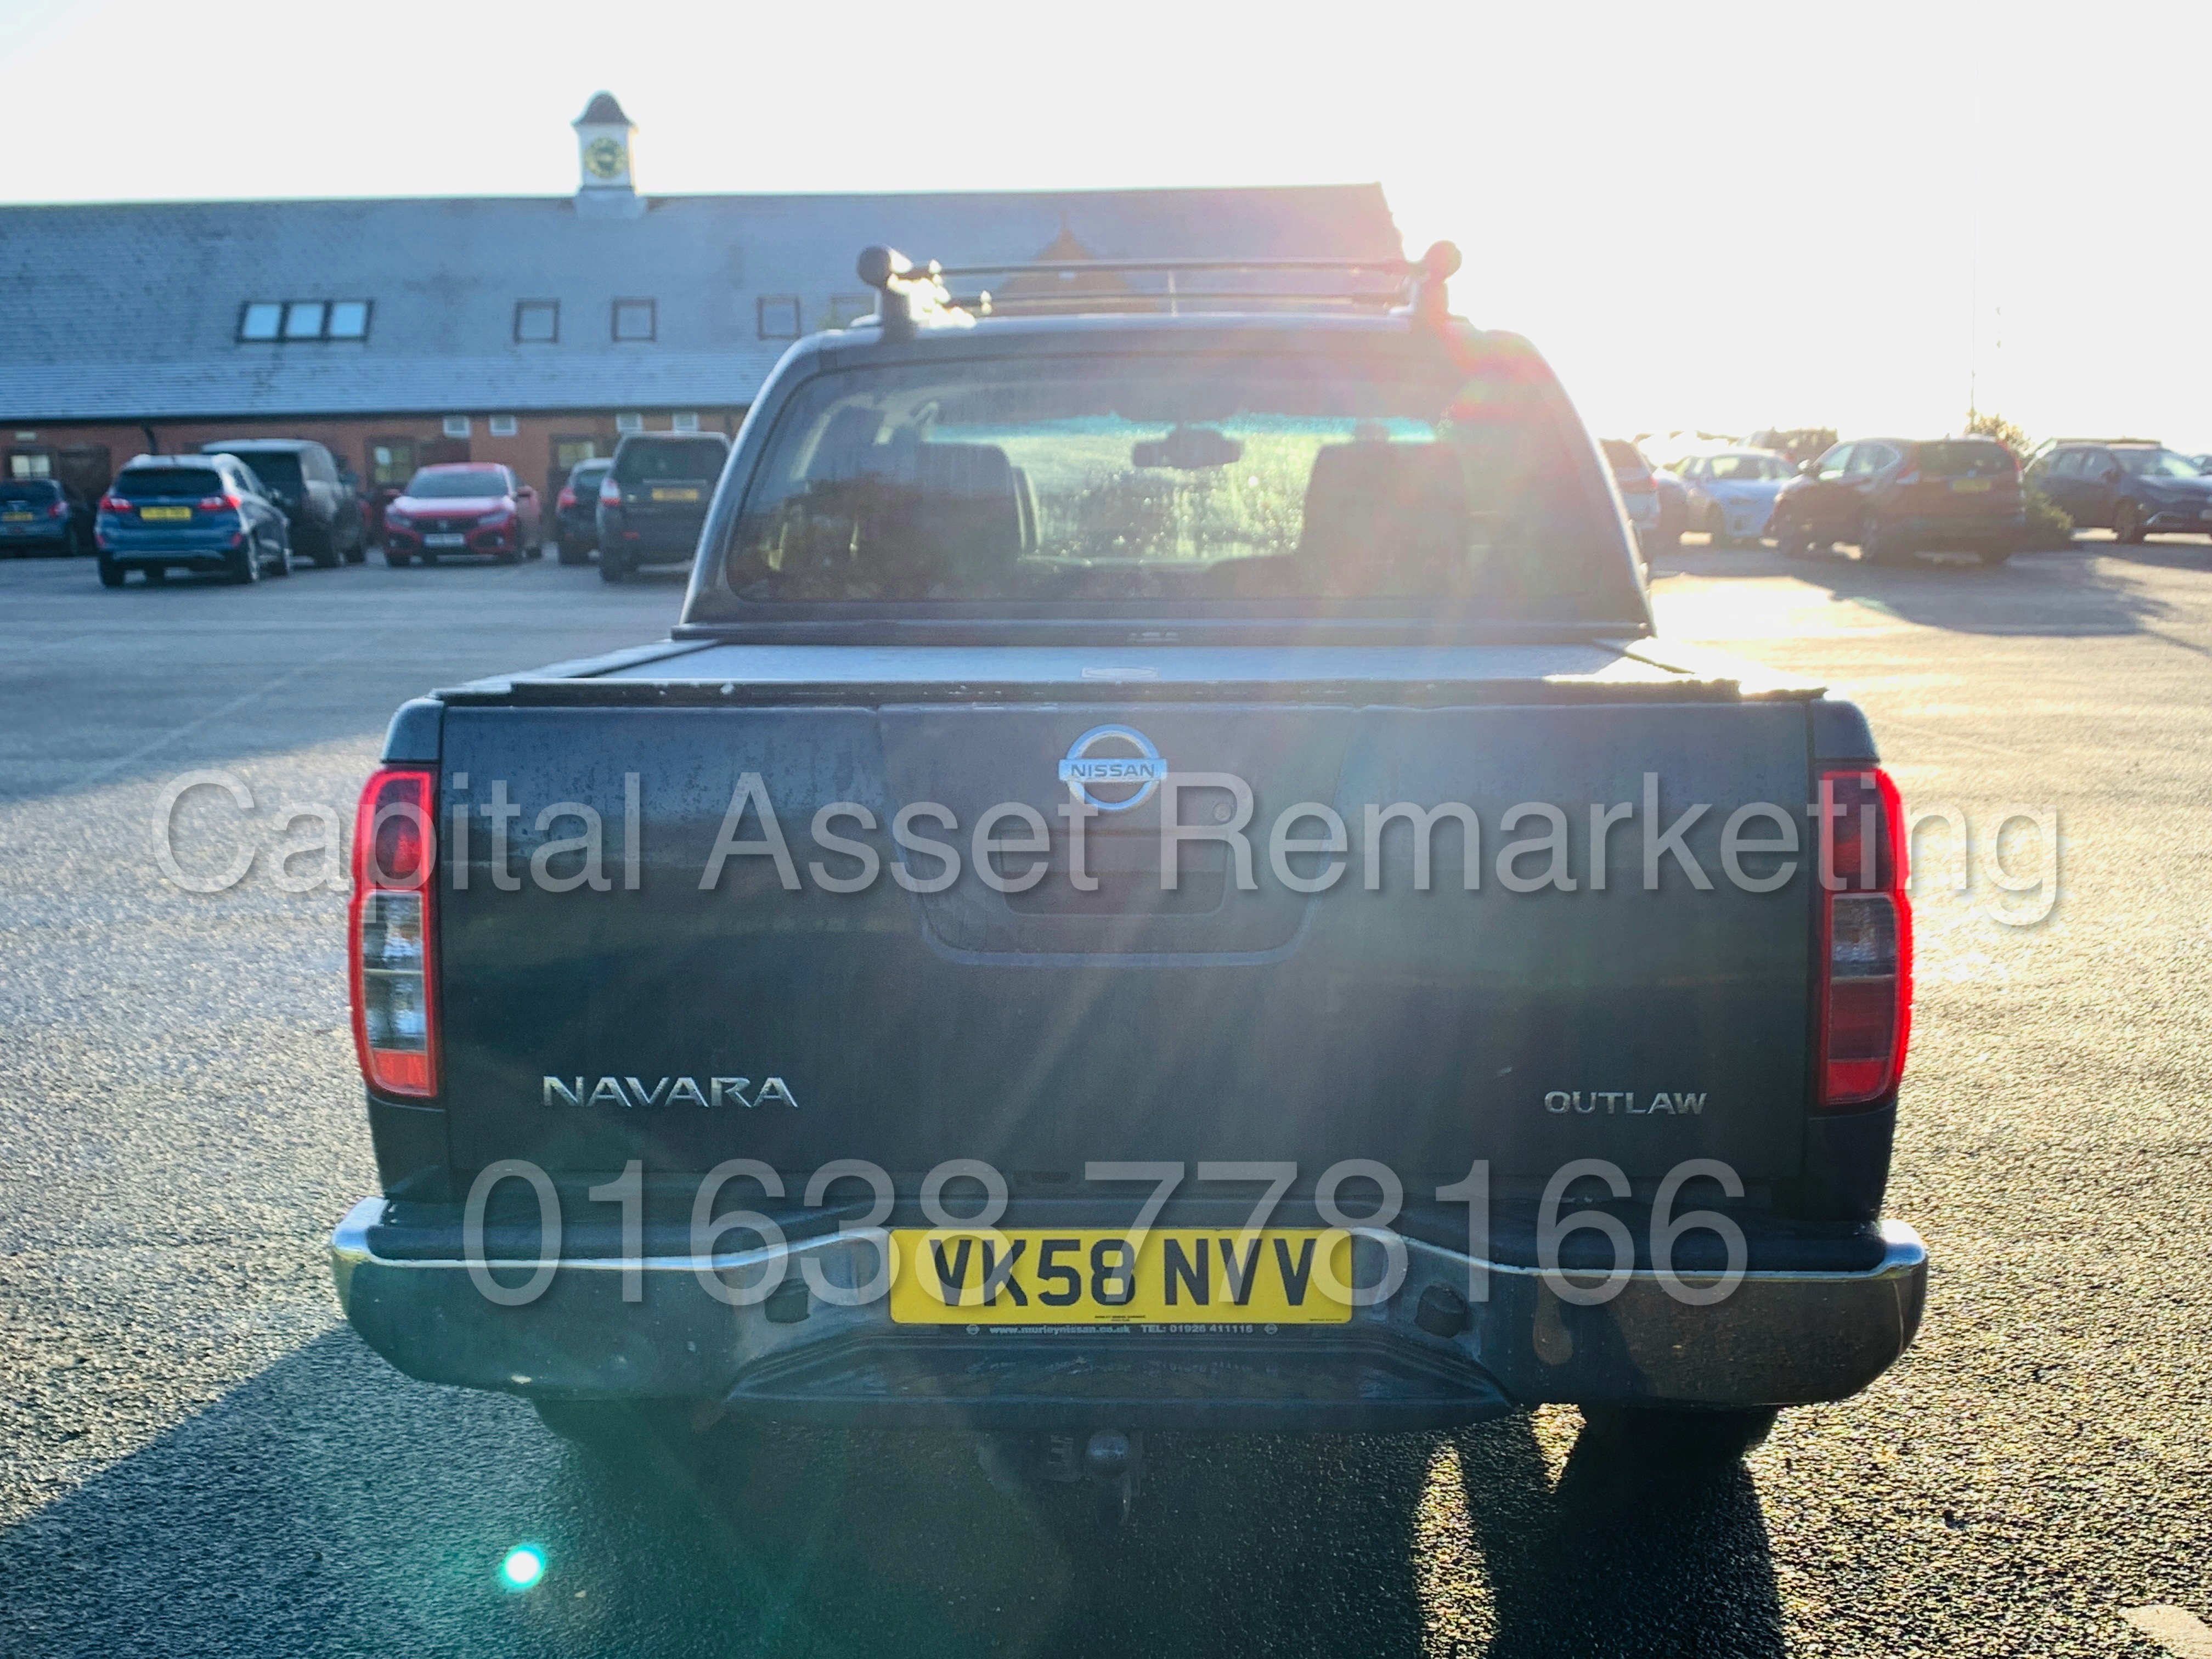 NISSAN NAVARA *OUTLAW* DOUBLE CAB PICK-UP *4X4* (2009) '2.5 DCI-171 BHP- 6 SPEED' *AIR CON* (NO VAT) - Image 8 of 42